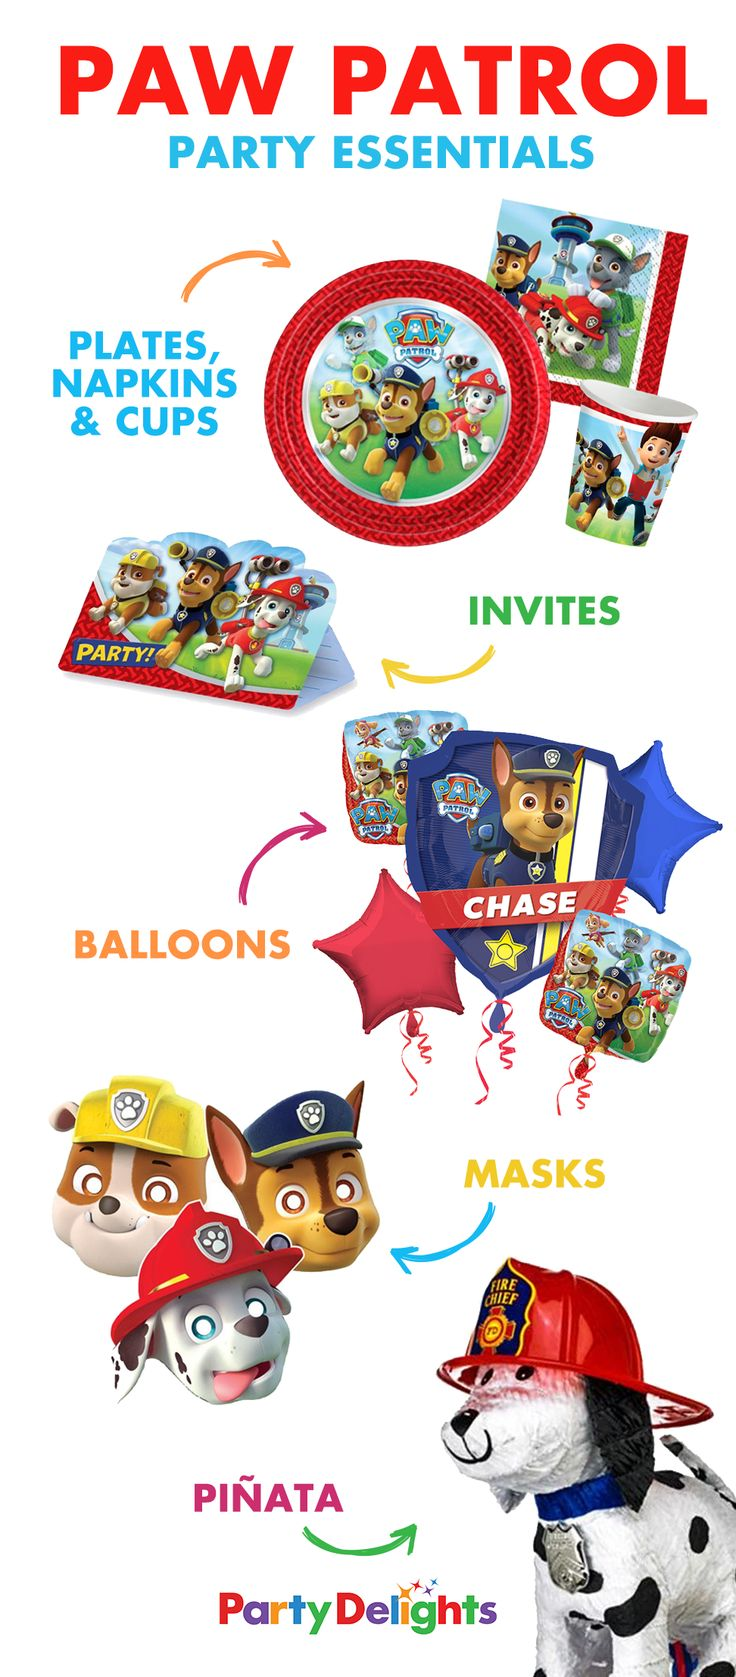 Big happy birthday badges party products party delights - Throw An Amazing Paw Patrol Birthday Party With These Paw Patrol Party Essentials Tableware